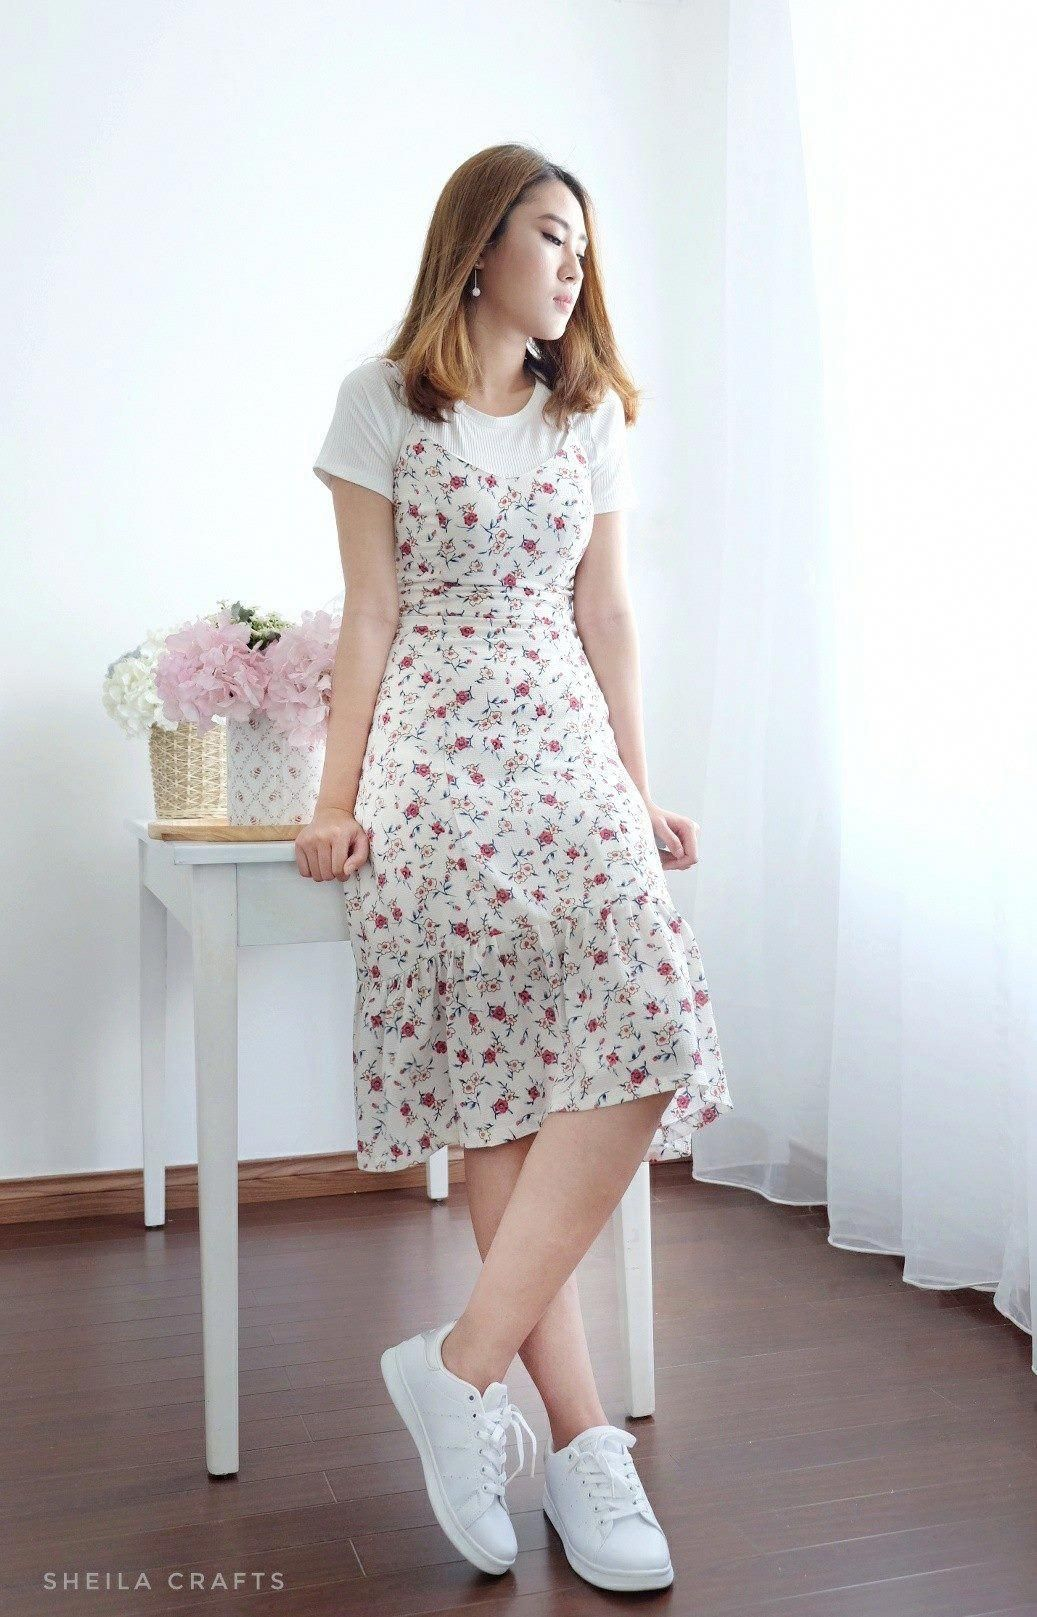 Cute and simple. Floral print below the knee dress with white